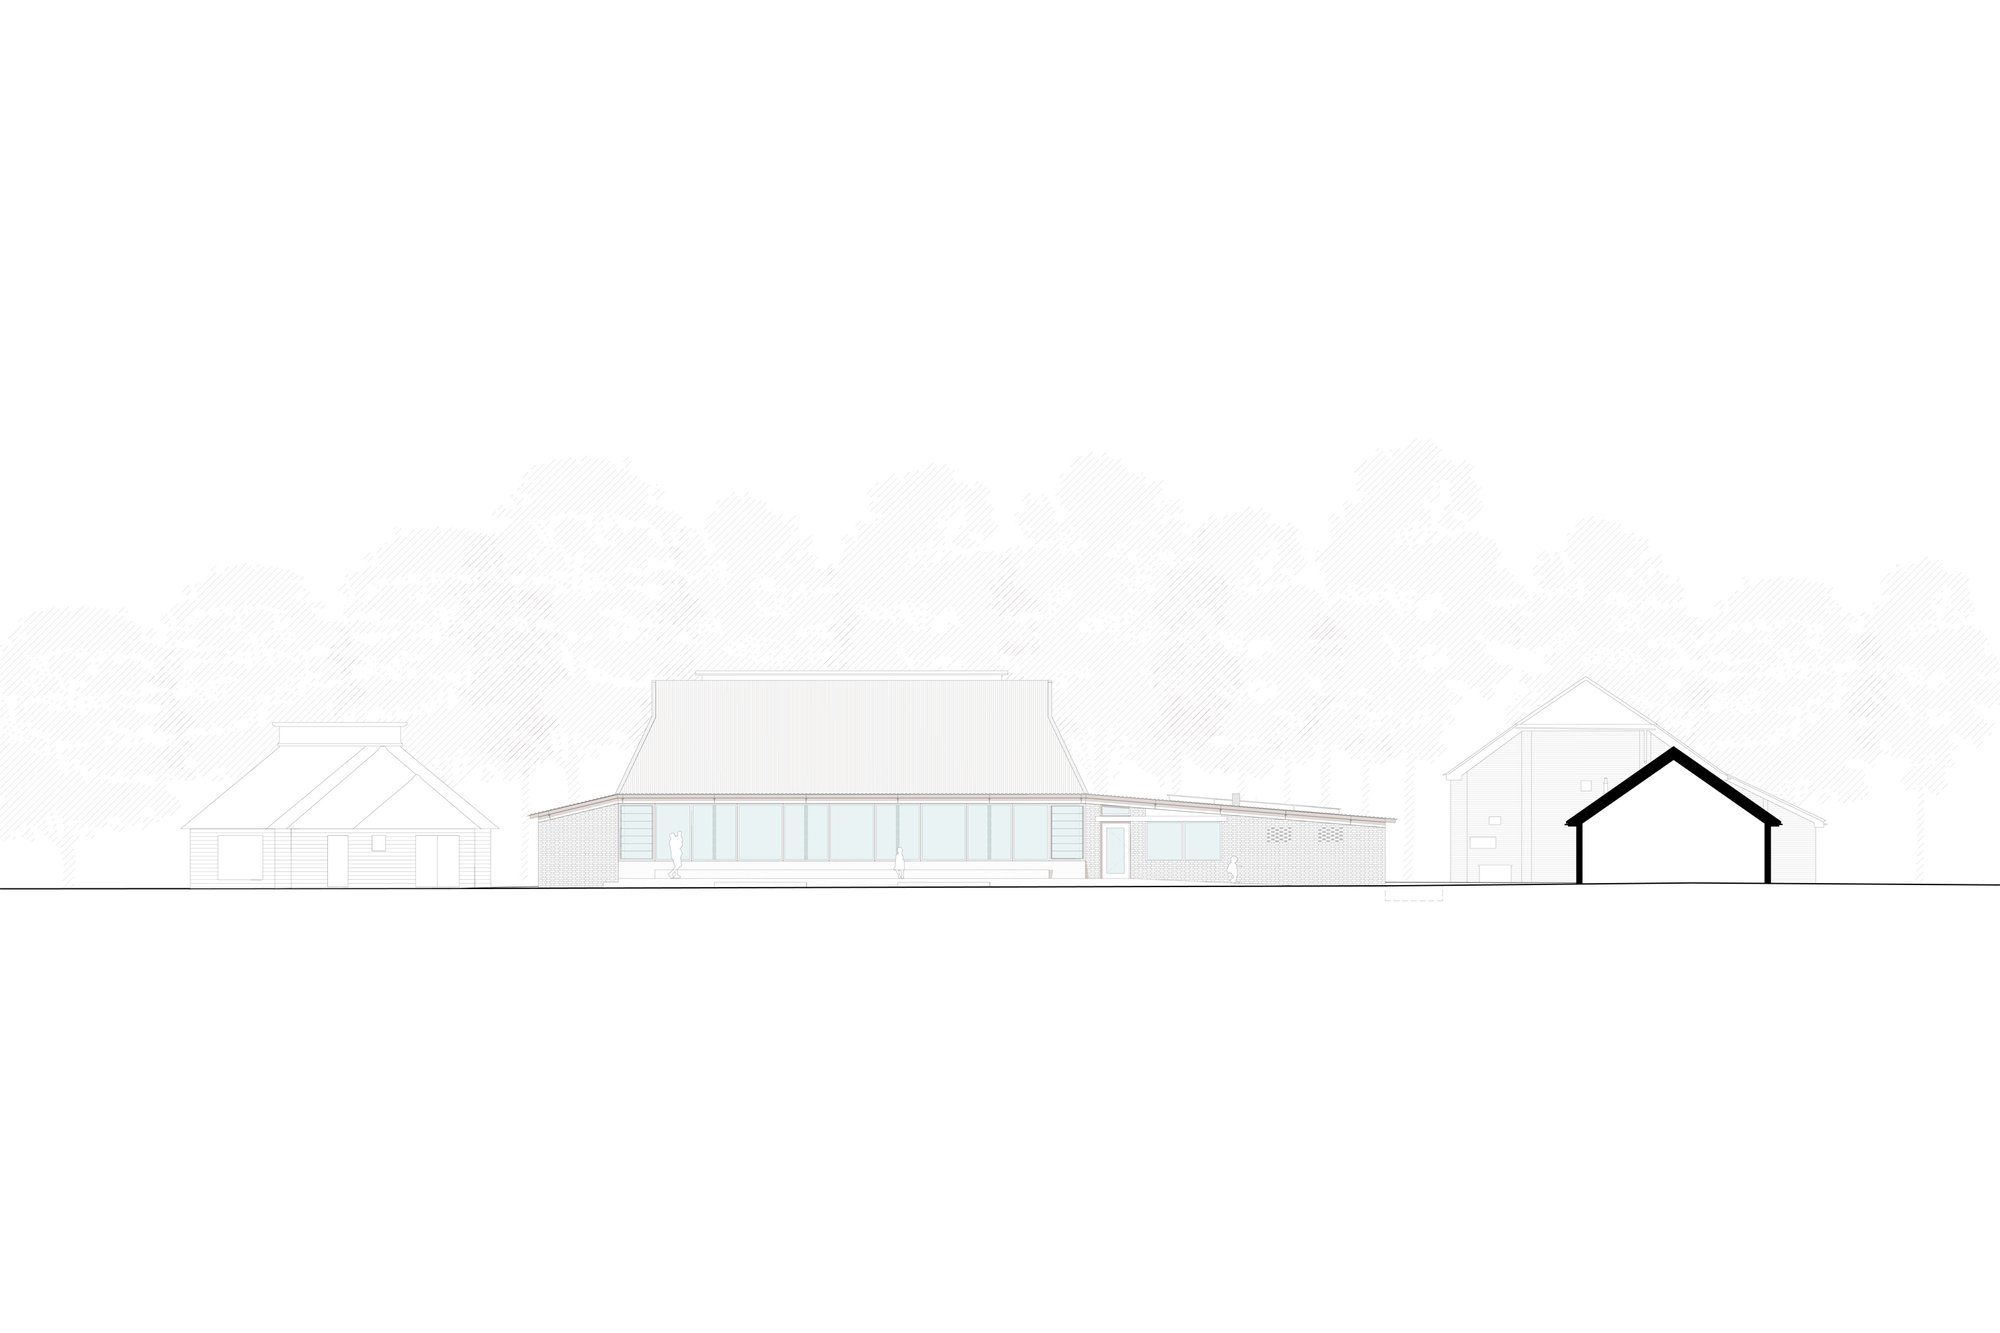 10_9_1502_Gayhurst School_east elevation.jpg